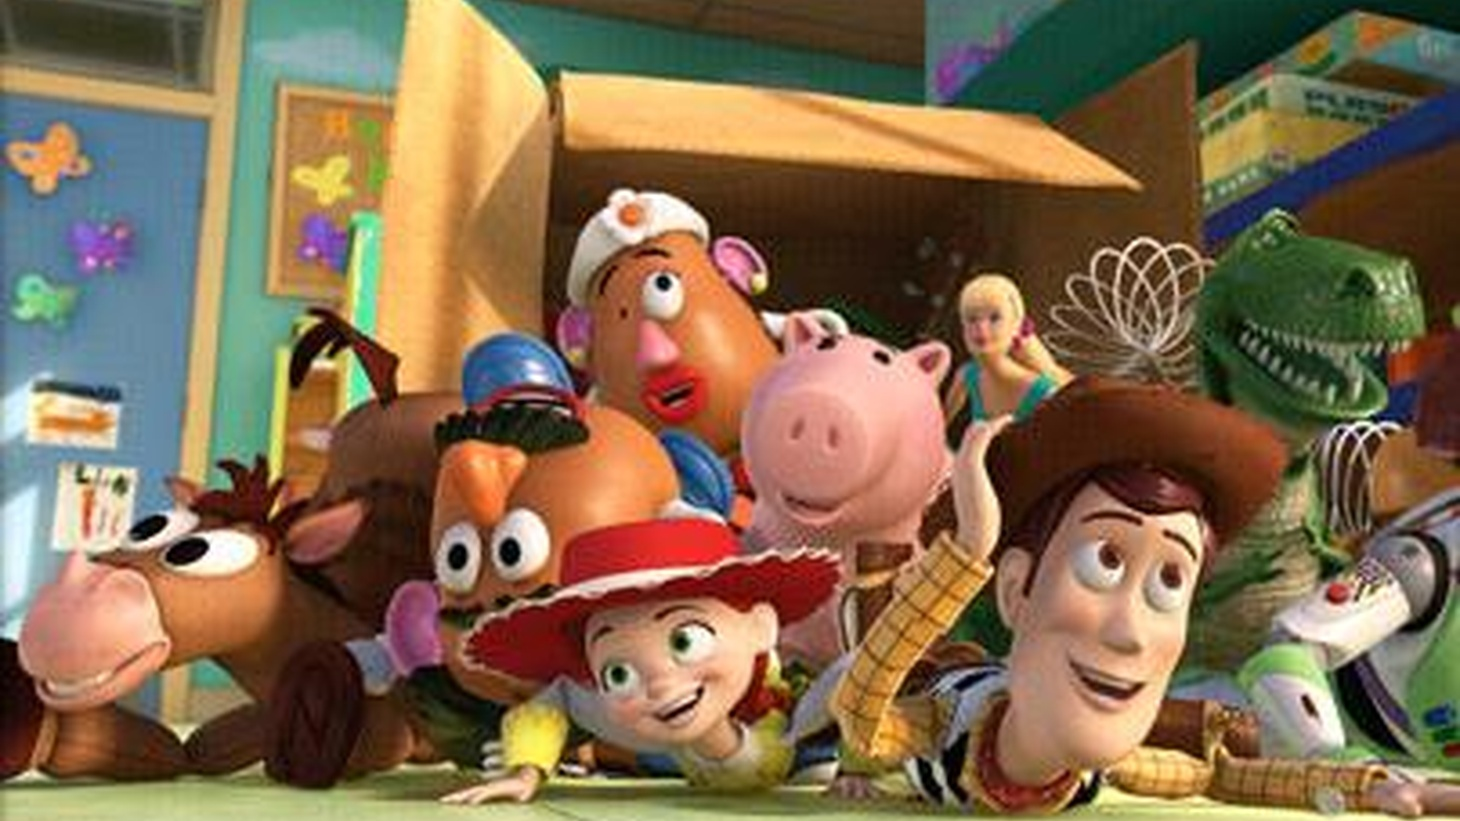 While the entertainment conglomerates have been churning out ever cheesier sequels, Pixar has been the Fort Knox of honest feelings, and so it remains. Fifteen years after Toy Story burst upon the scene, Toy Story 3, the third film of the trilogy turns out to be gorgeously joyous and deeply felt…